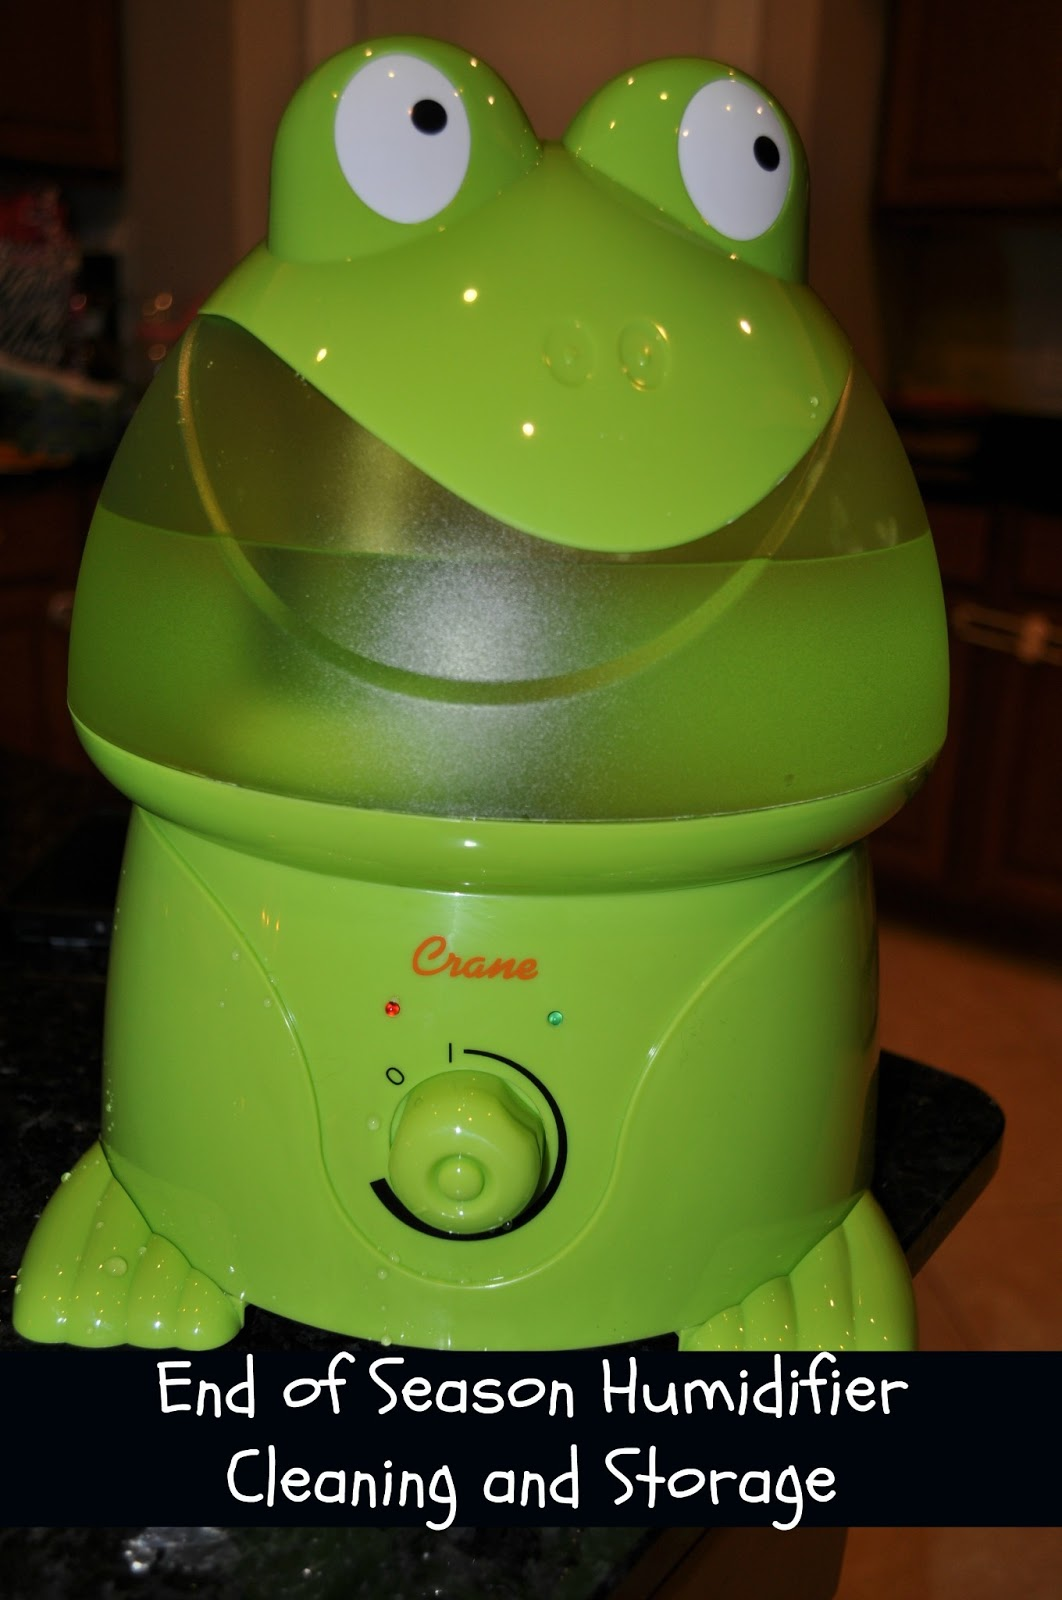 : How to Clean and Store Your Humidifier at The End of Flu Season #B06718